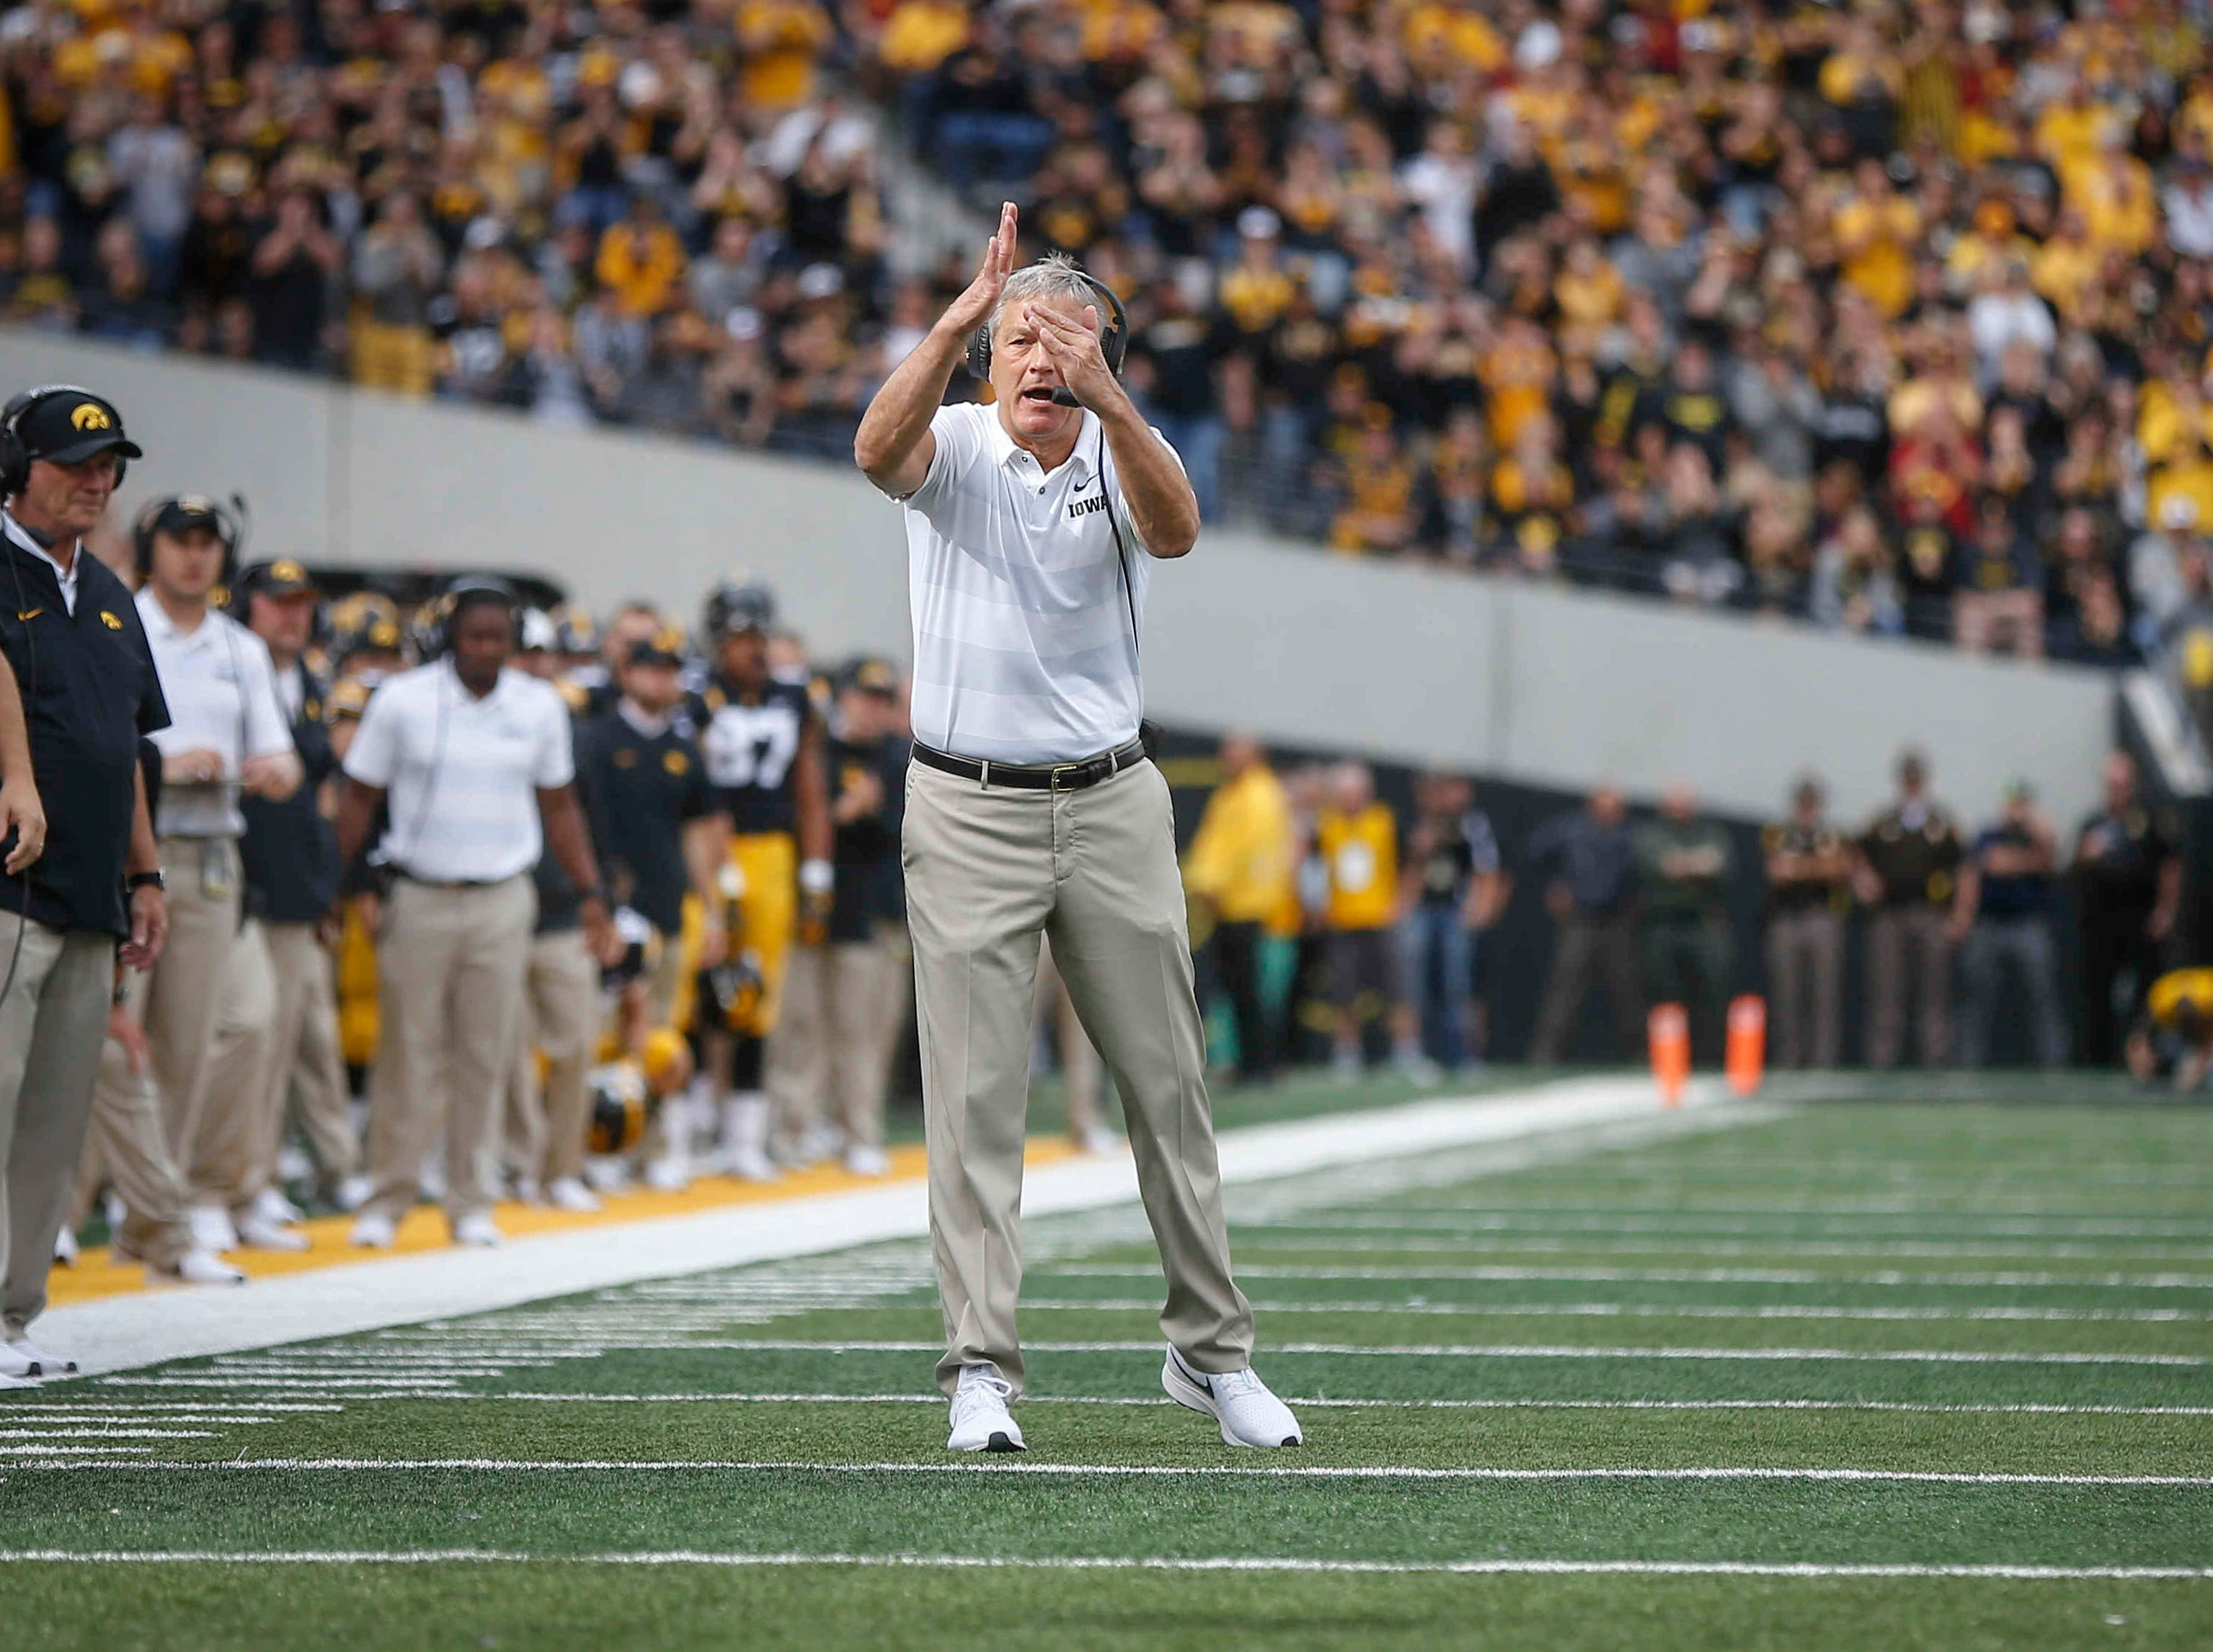 Iowa head football coach Kirk Ferentz calls a timeout in the first quarter against Iowa State on Saturday, Sept. 8 2018, at Kinnick Stadium in Iowa City.